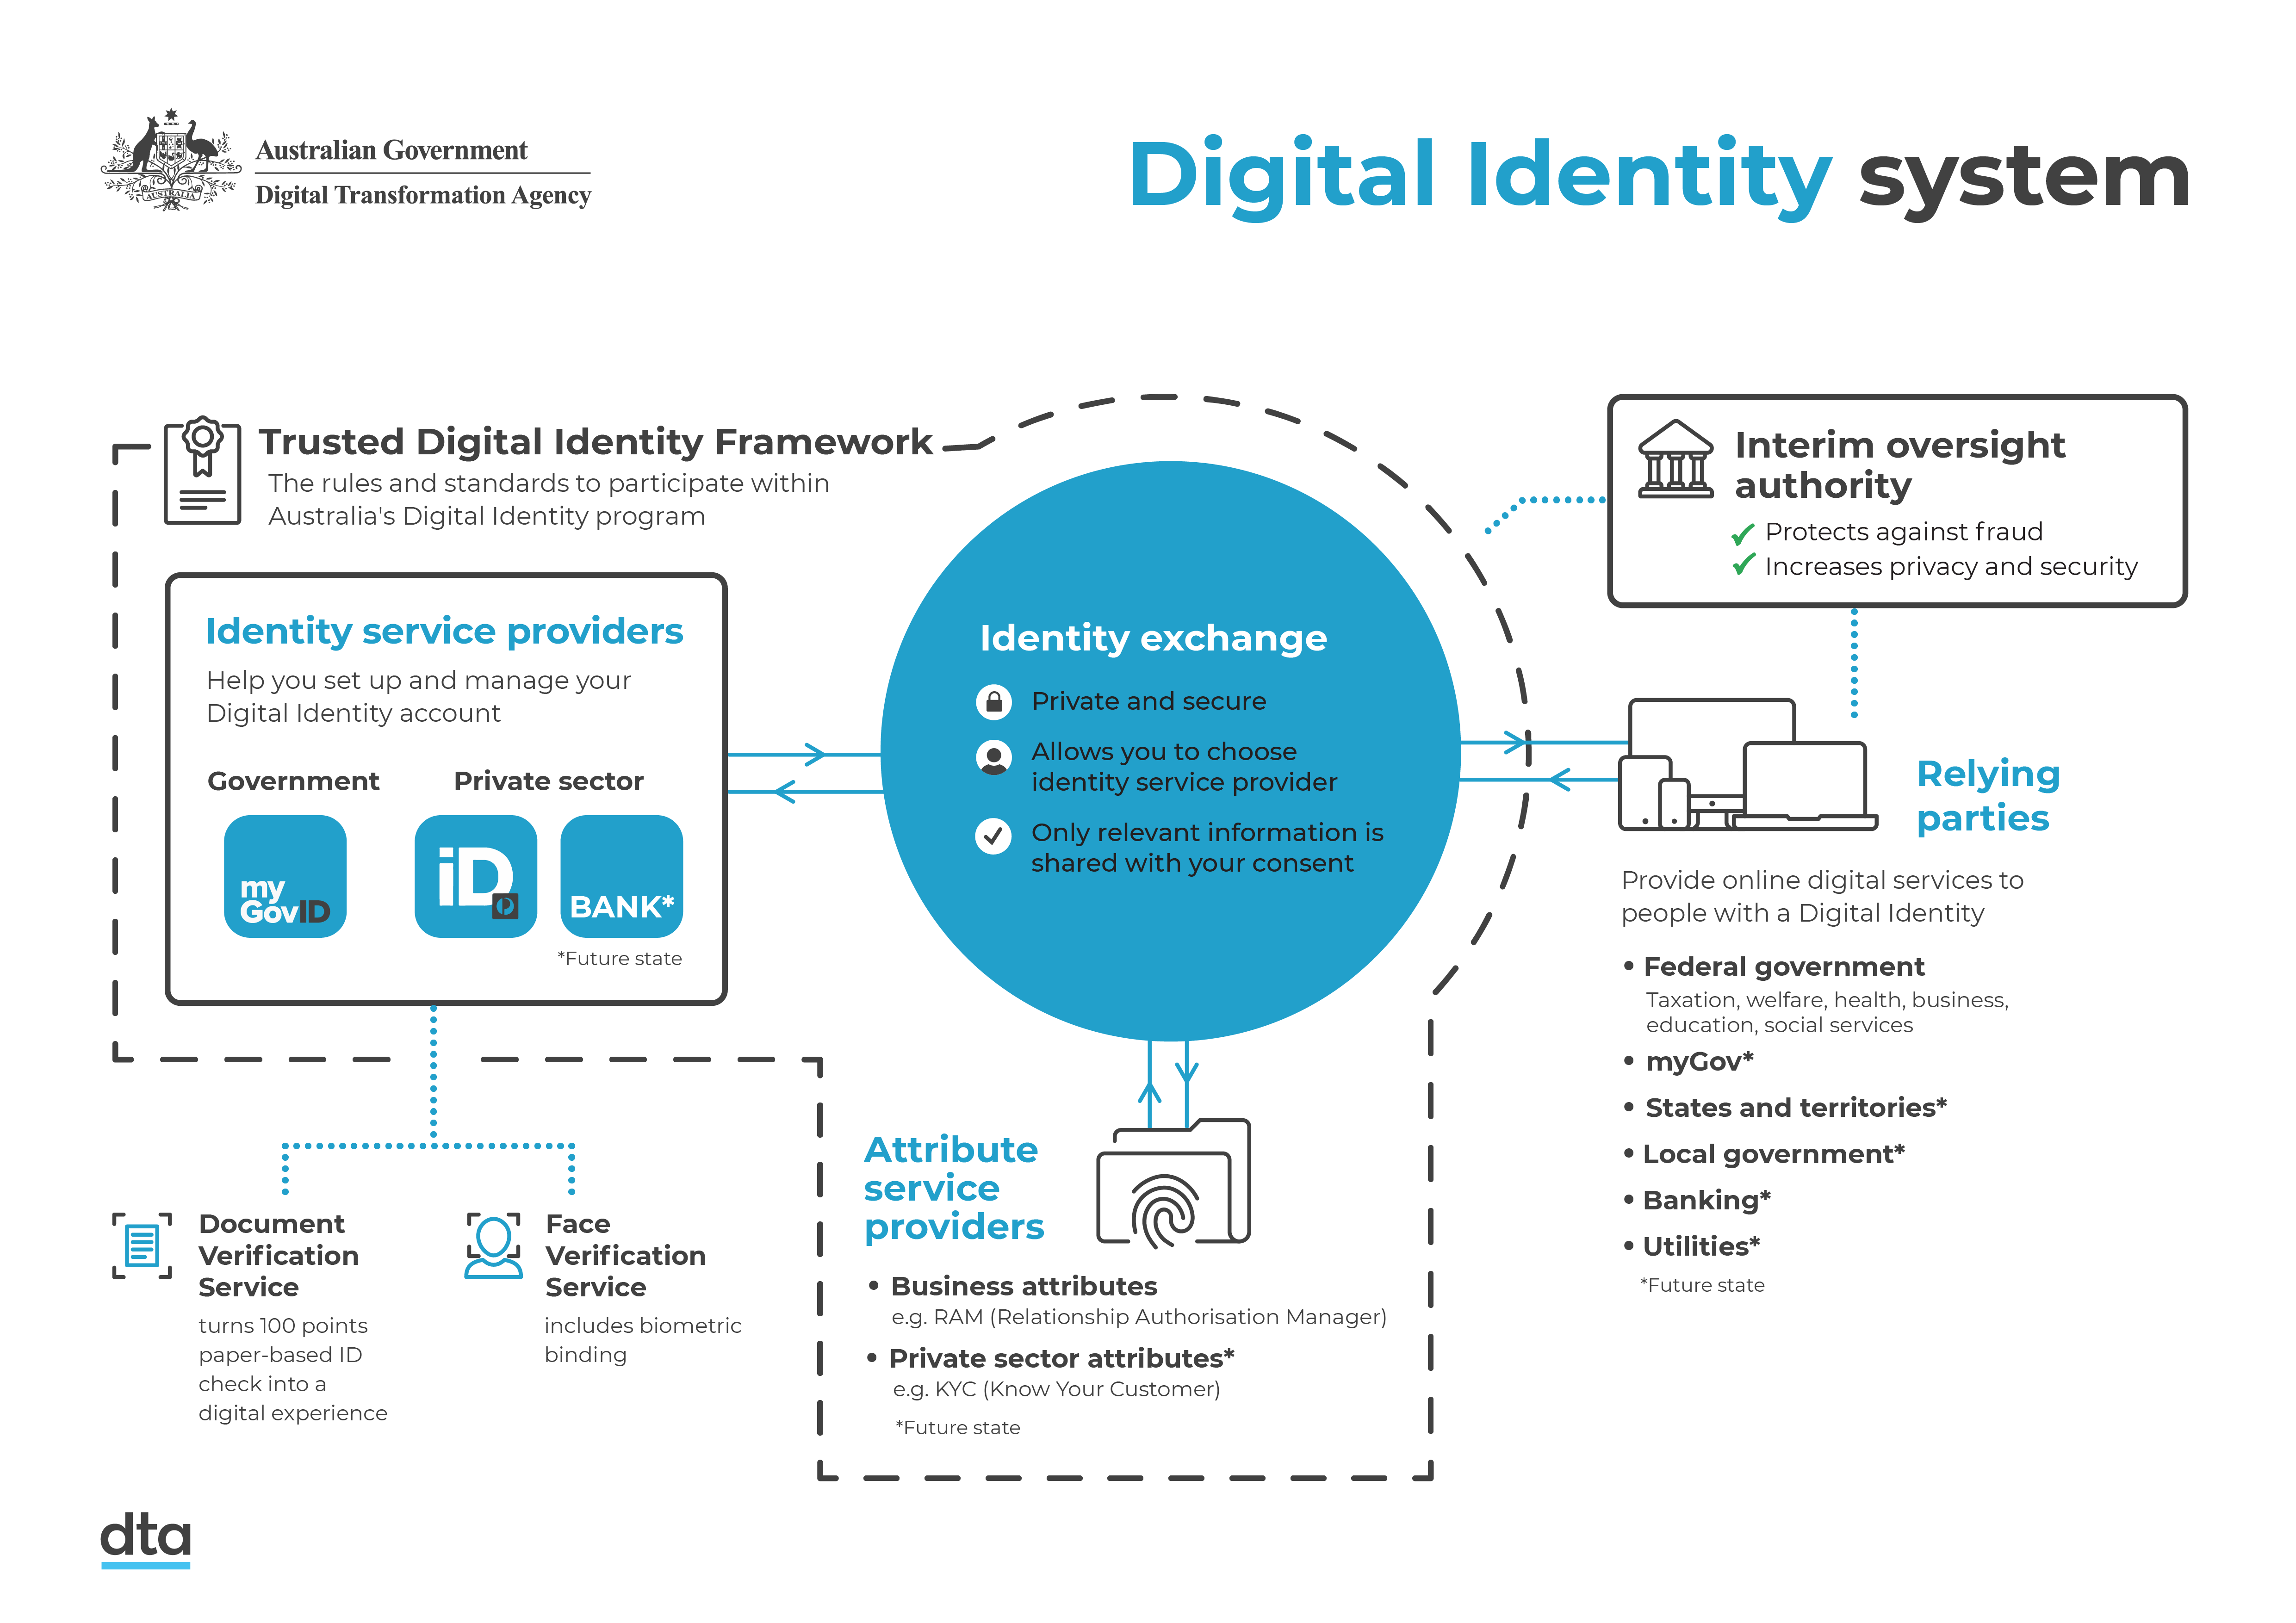 This image shows components of the Australian Government Digital Identity system working together. These are the Interim Oversight Authority, relying parties, and the Trusted Digital Identity Framework made up of identity service providers, attribute service providers, and an identity exchange.